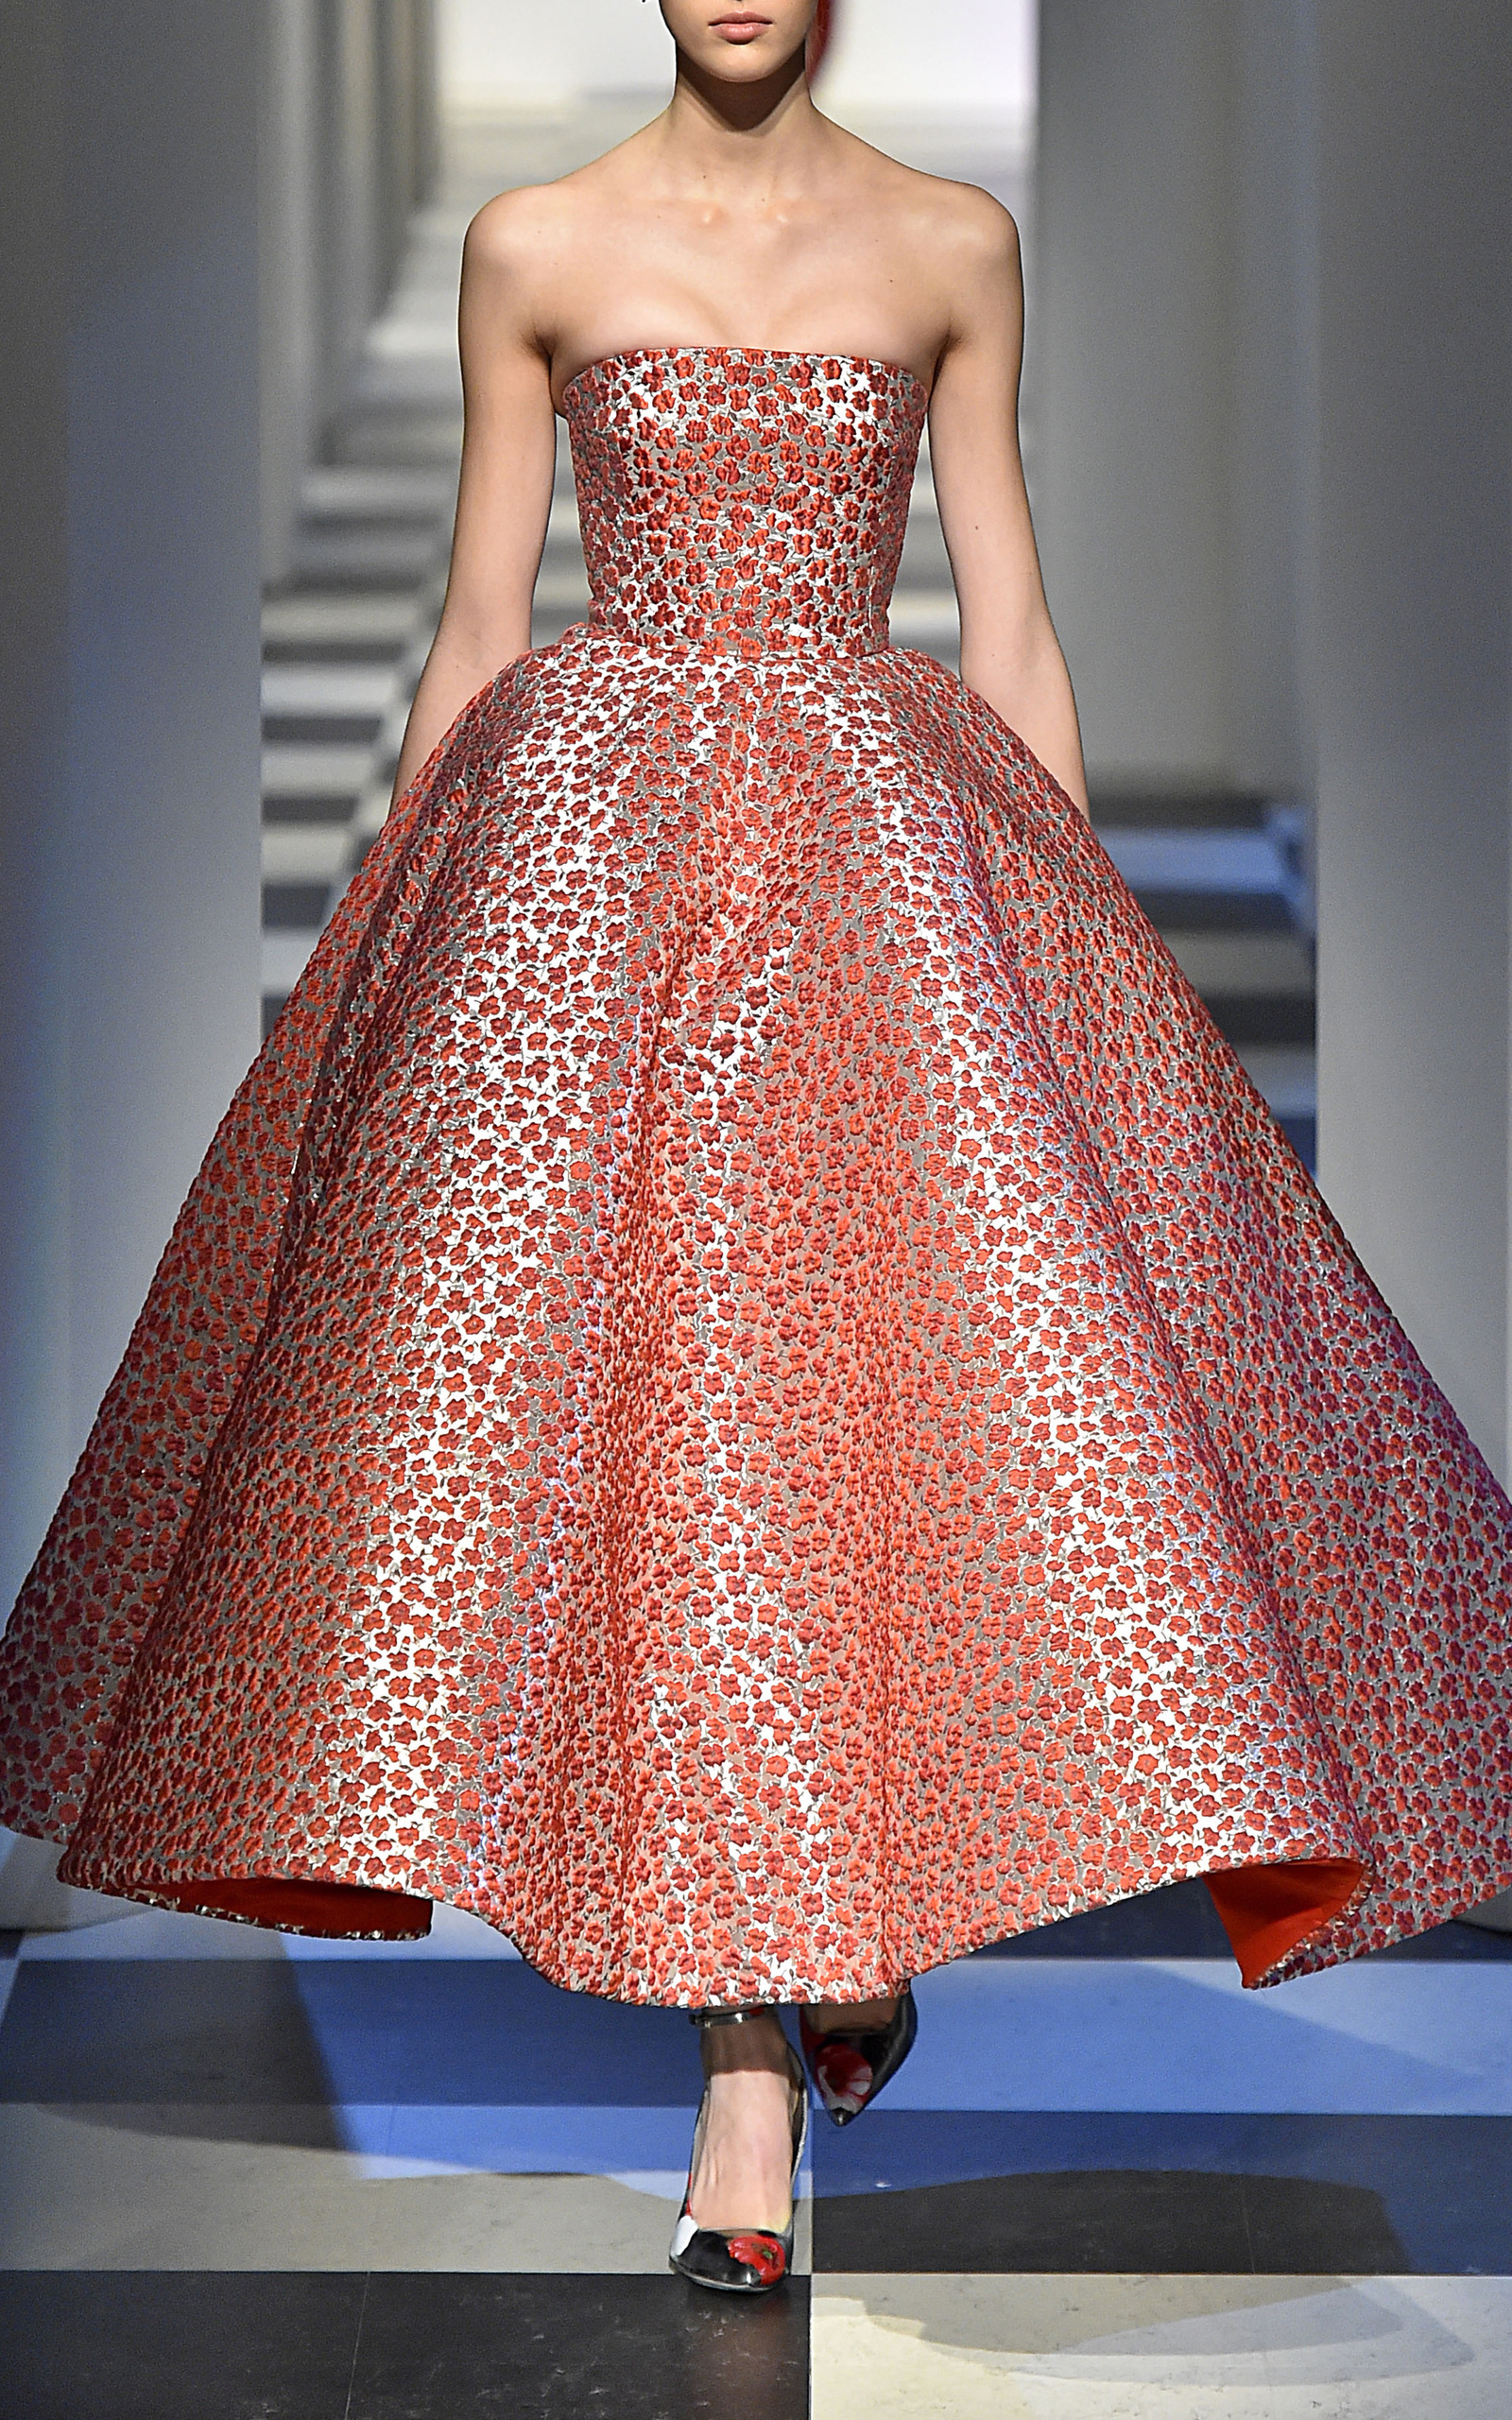 Oscar de la Renta Knee-Length Printed Dress Cheap Sale Manchester Buy Cheap Low Shipping Fee In China Cheap Price New Style BF47jYvnt